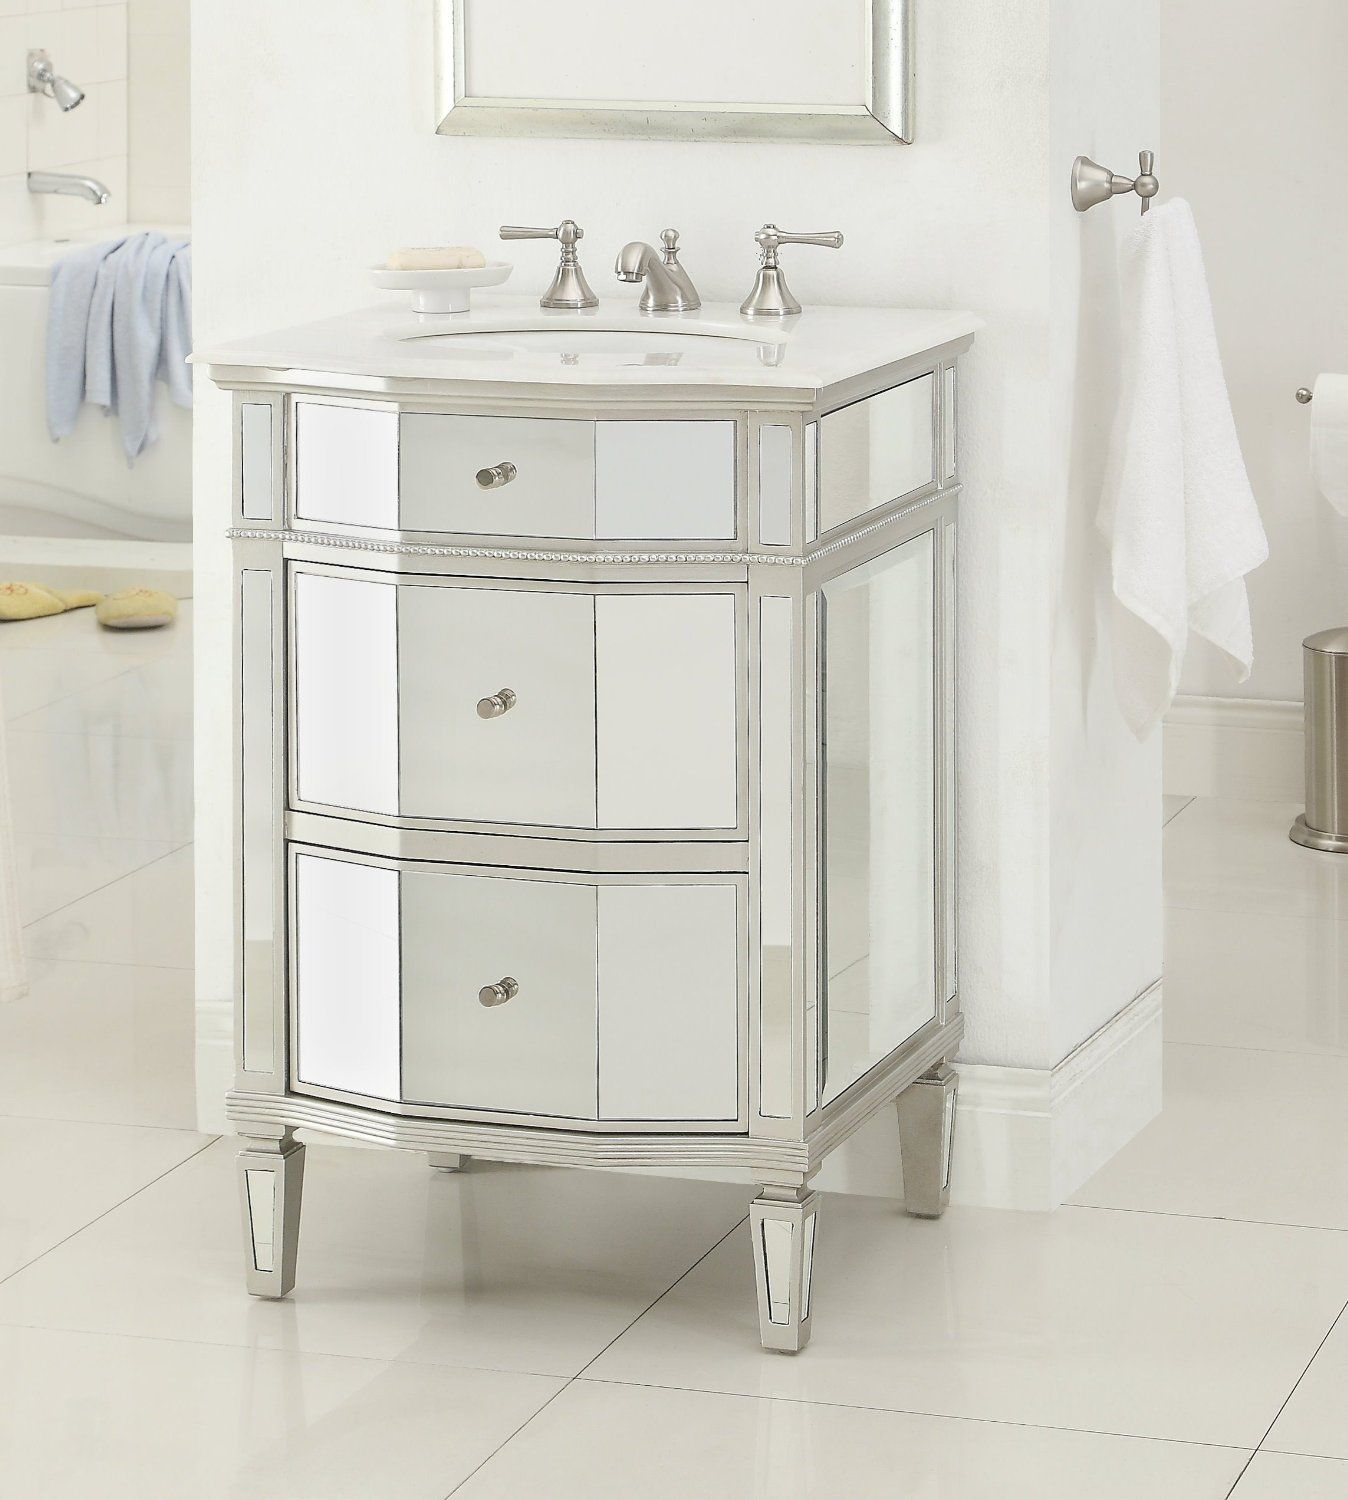 Adelina 24 inch Mirrored Bathroom Vanity, Imperial White marble ...